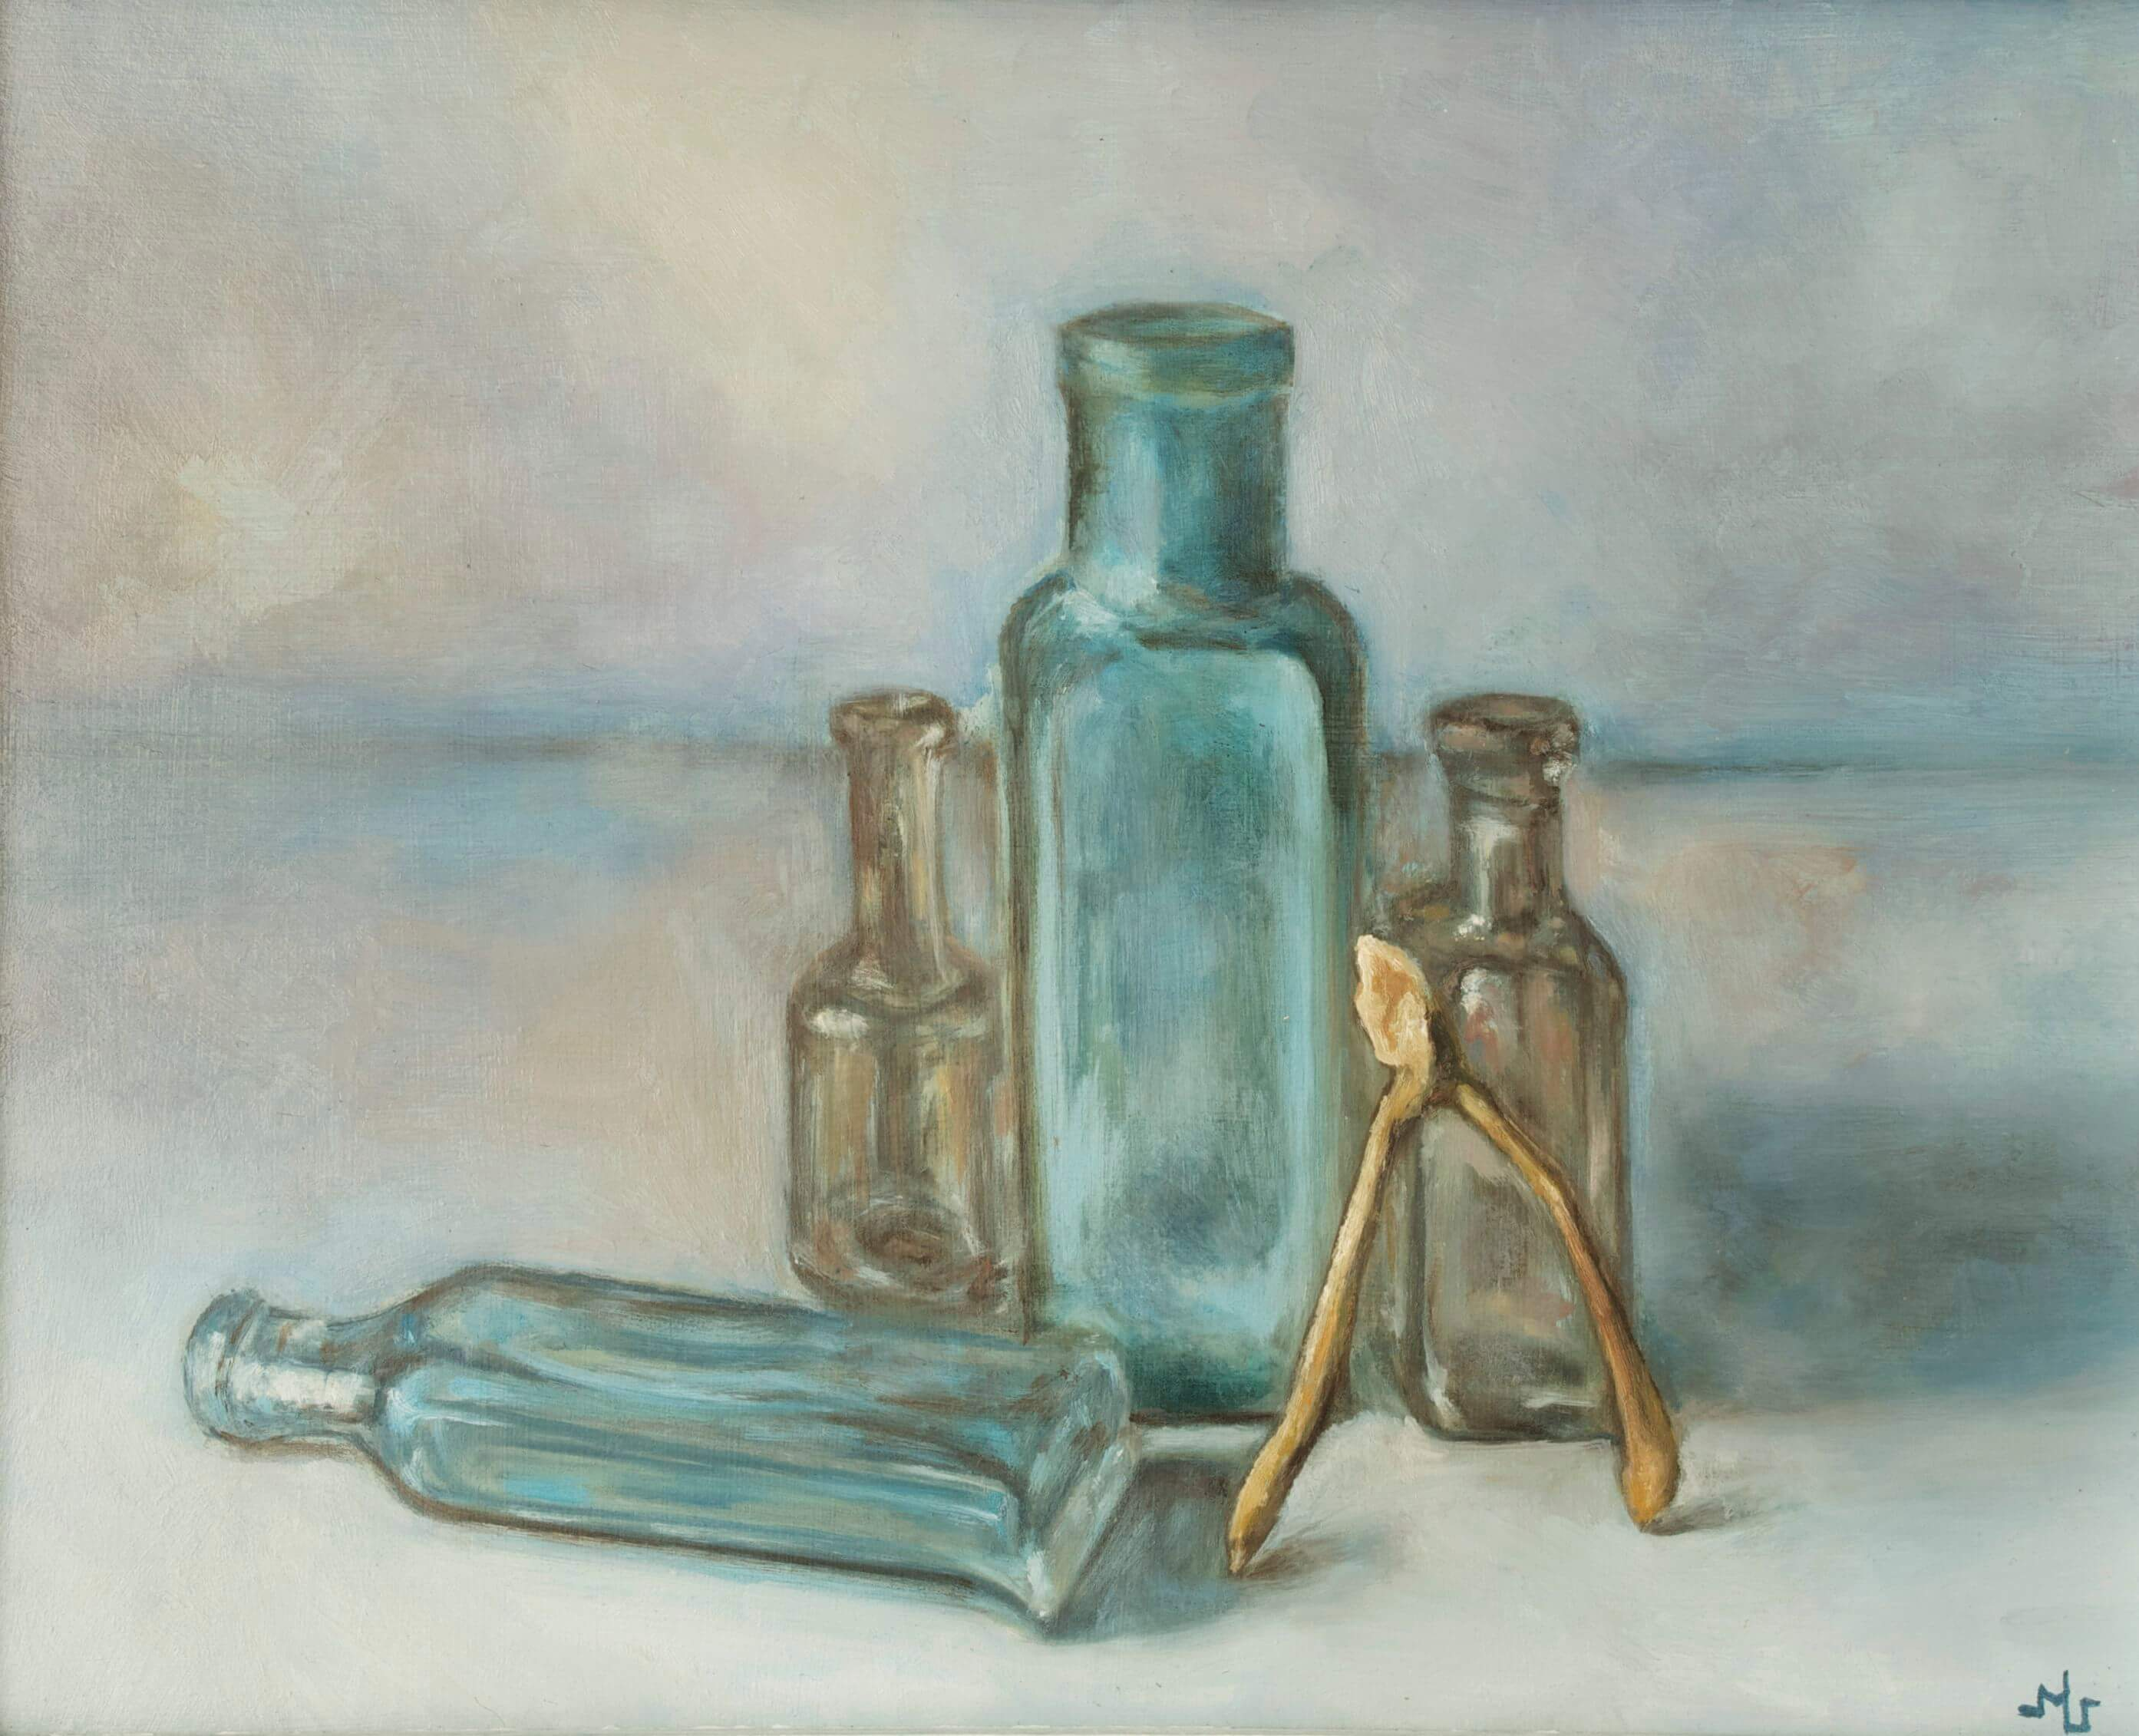 Sculptlerybones by Kiki & Marc Lamuniere, four bottles and a wish, handmade painting, mixed media